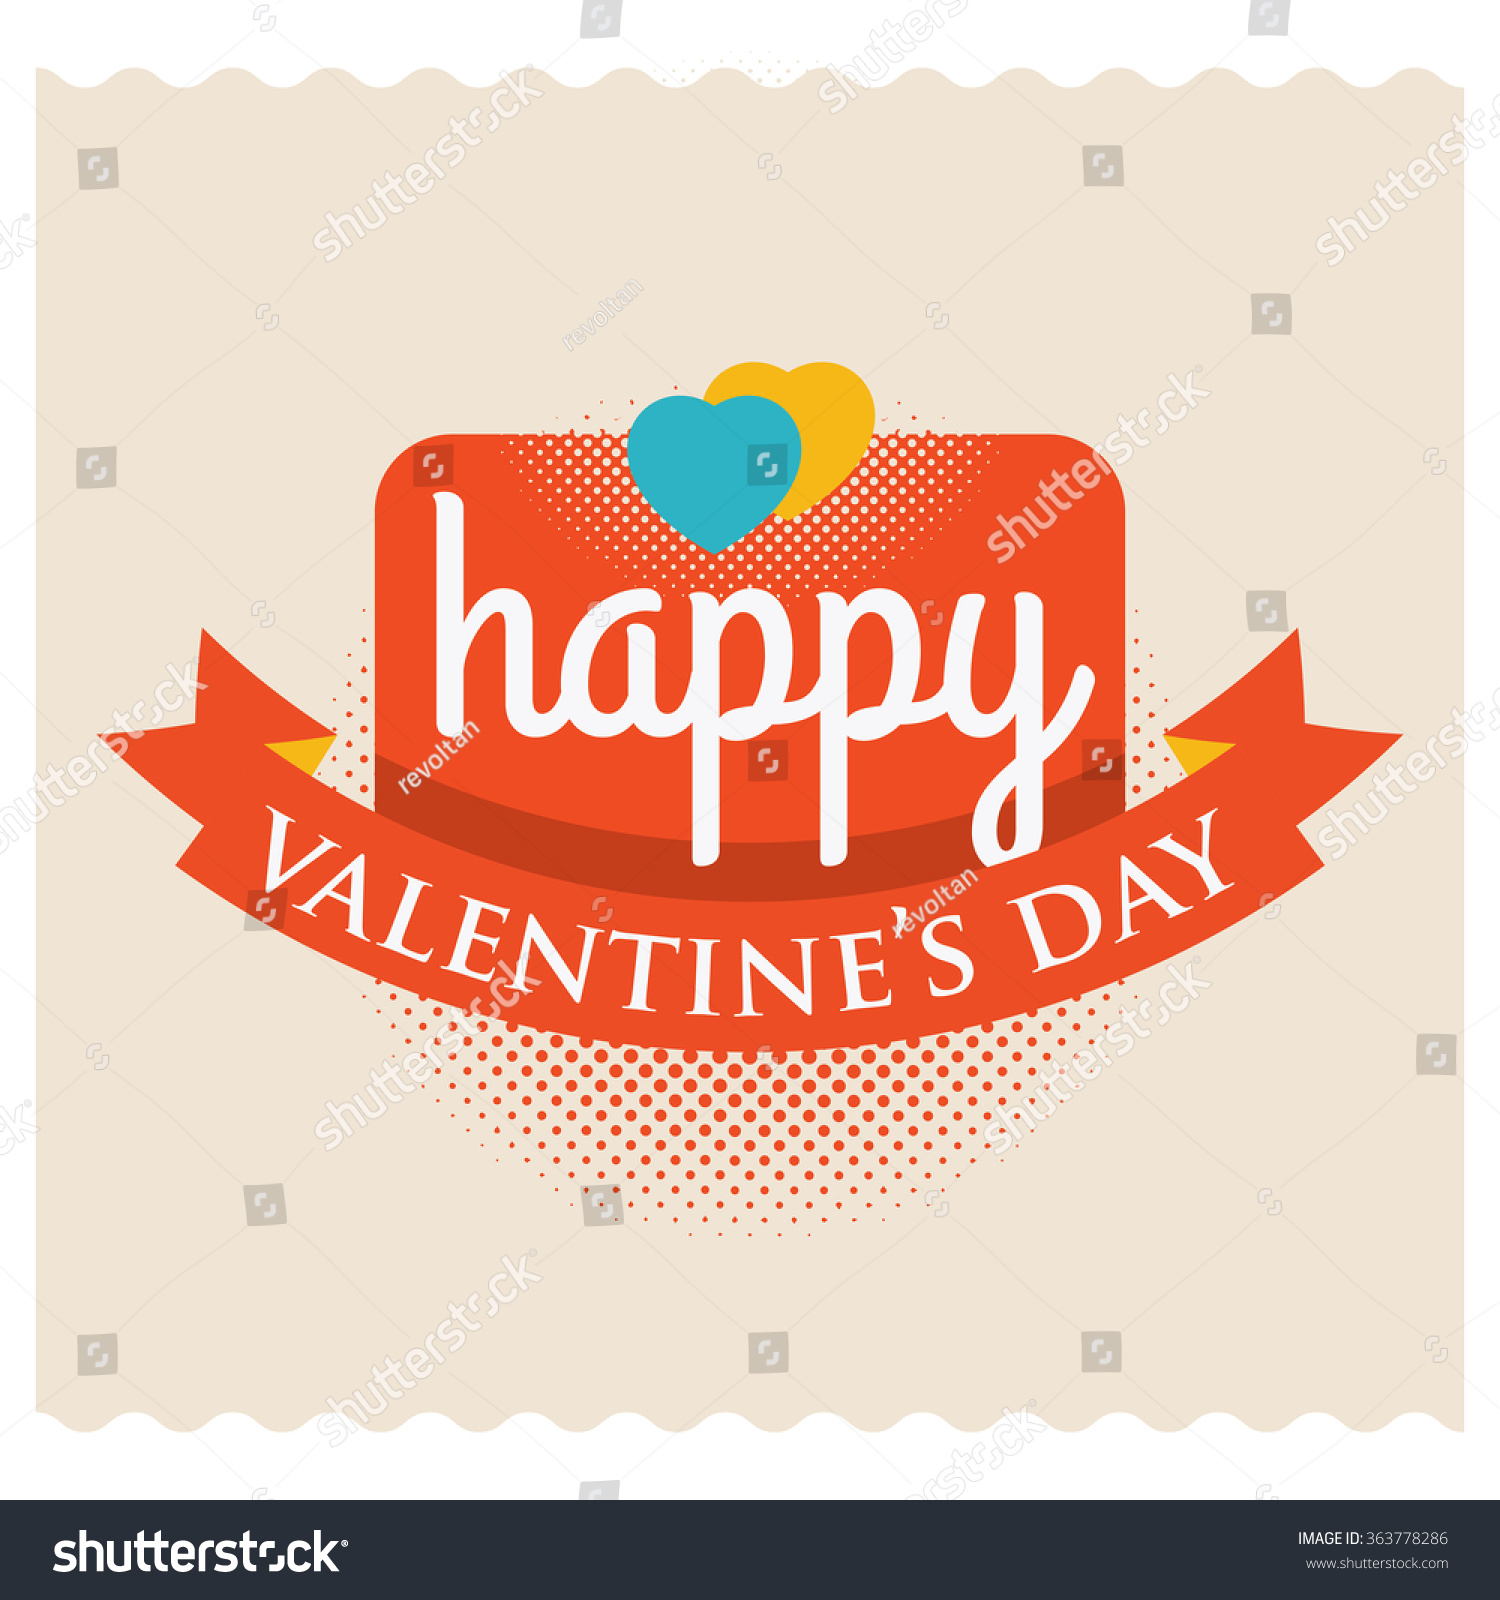 Happy valentine valentine greeting words stock vector 363778286 valentine greeting words kristyandbryce Images